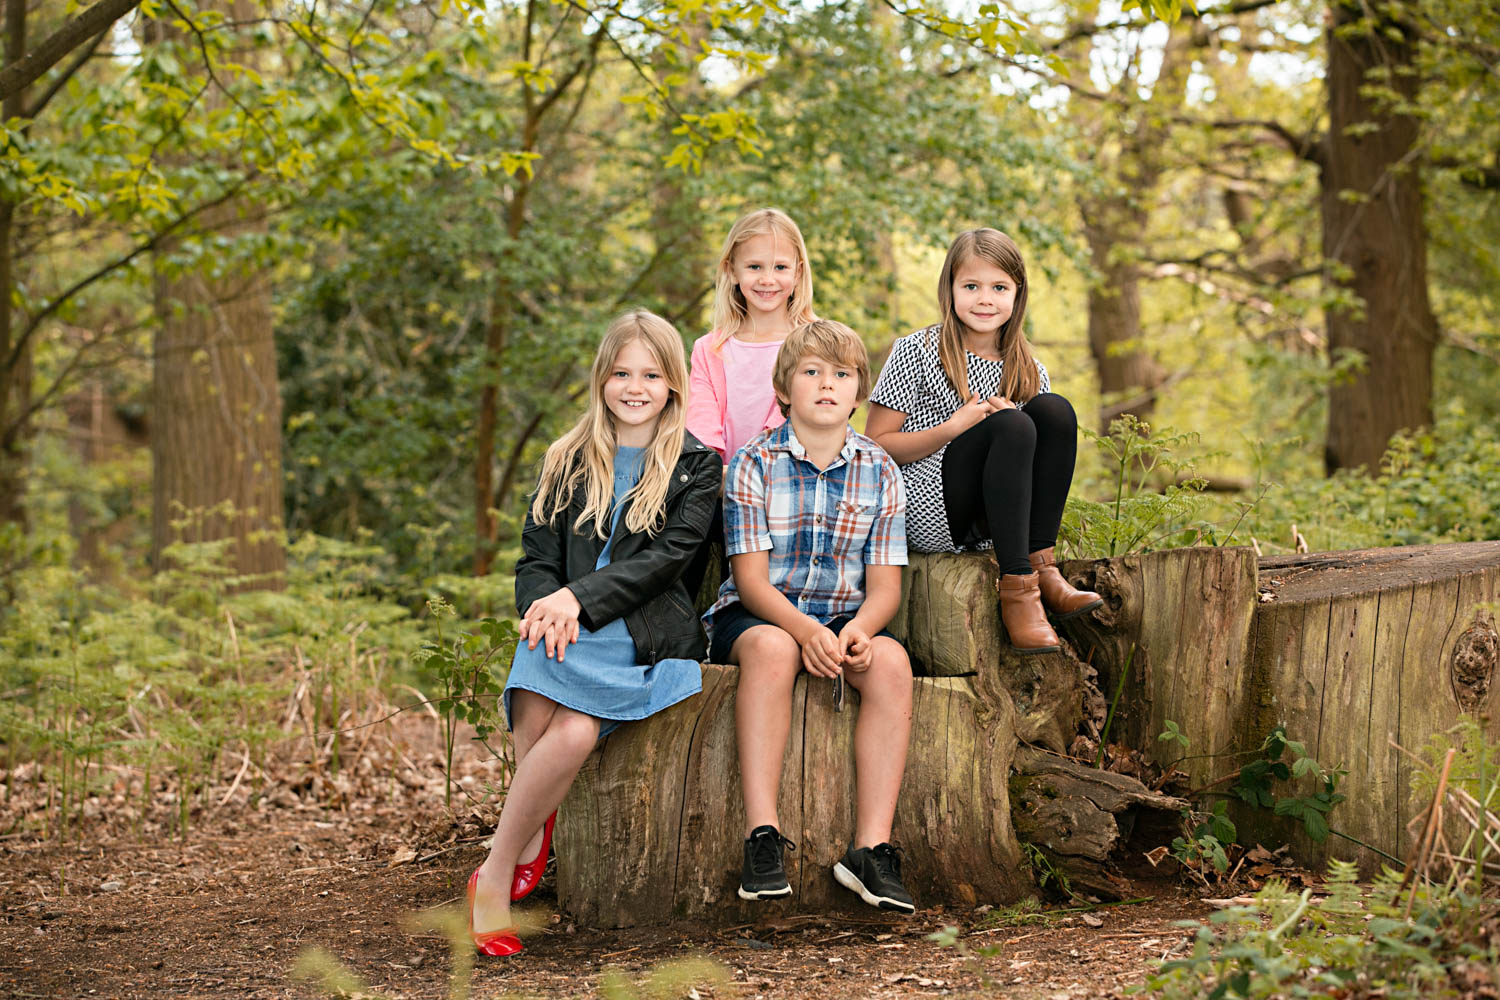 Siblings posing for a family portrait during a photoshoot at Ampthill Park in Bedford.